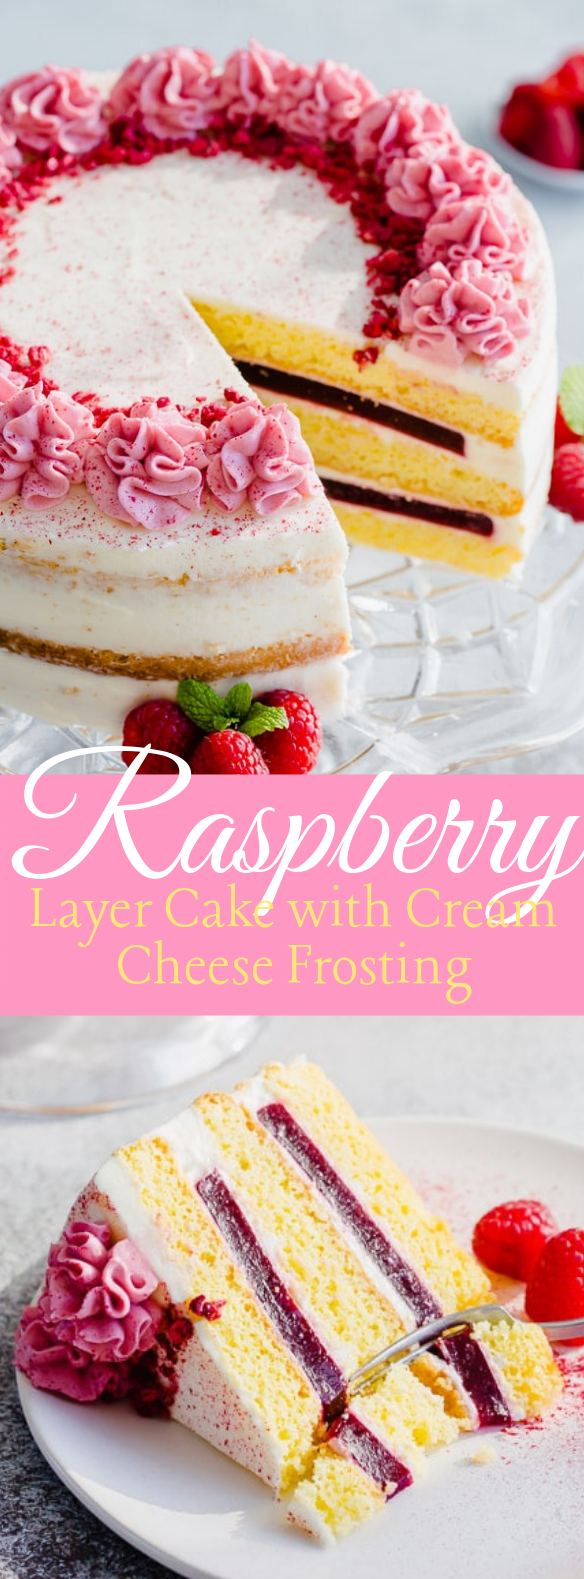 Raspberry Layer Cake with Cream Cheese Frosting #dessert #cake